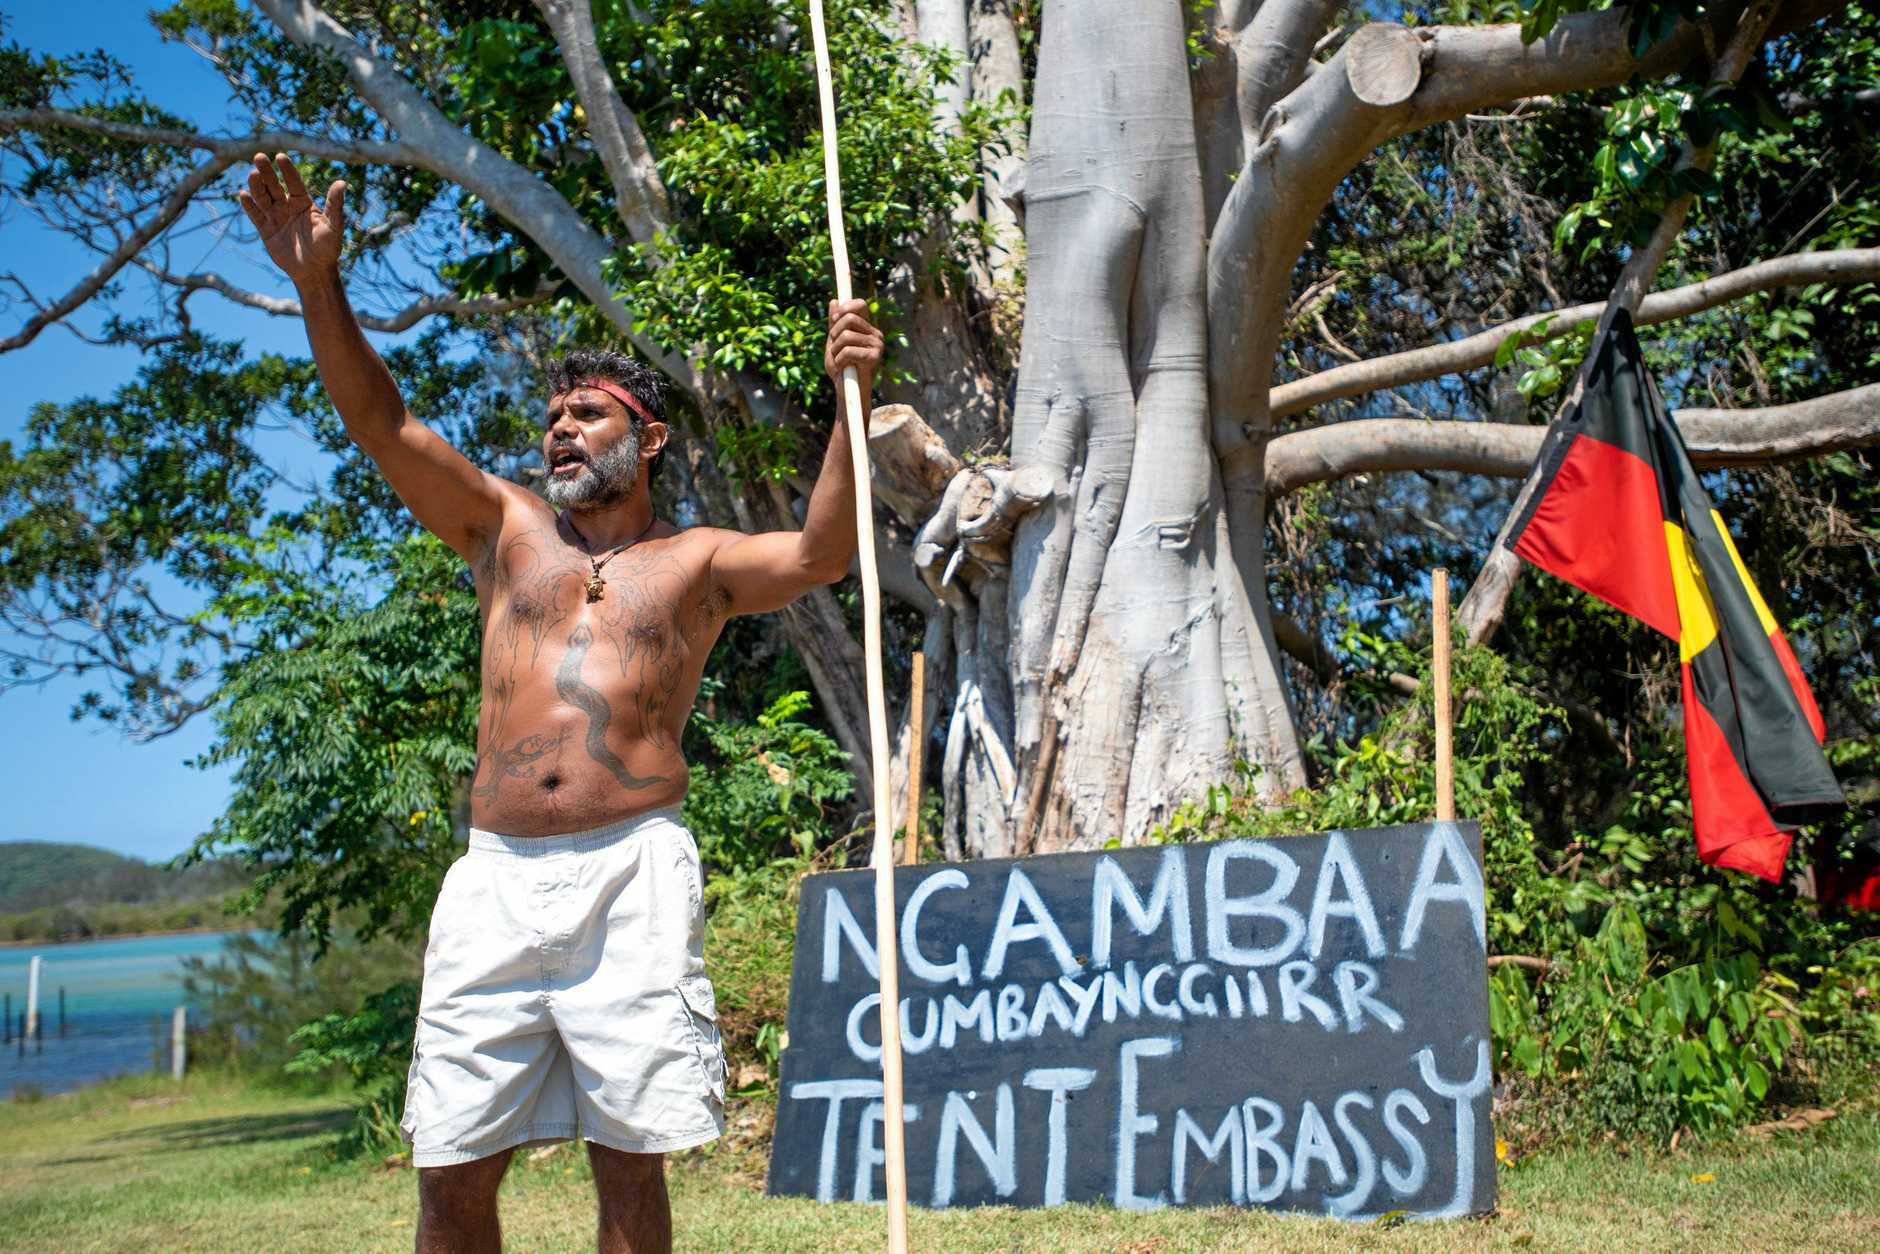 Buagin waves to a passer-by at the front of the Gumbaynggirr Tent Embassy.